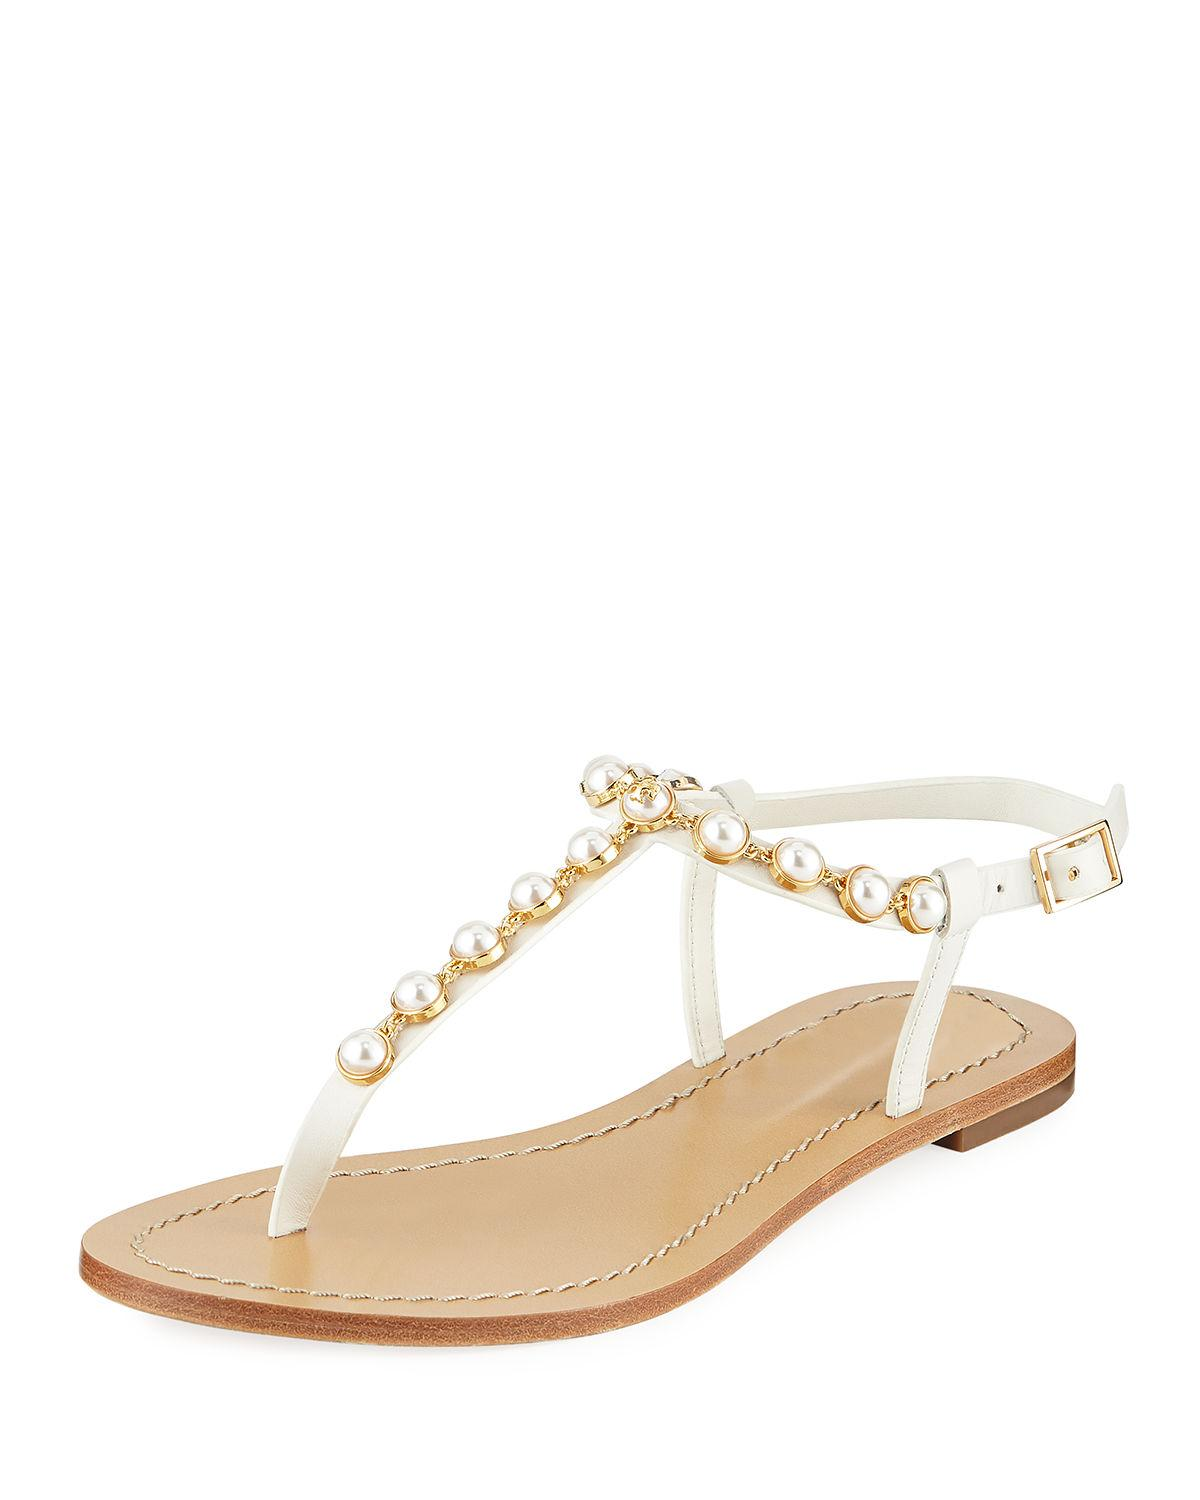 7b9e49a2a70c Tory Burch. Women s Emmy Pearly Beaded Flat Sandals